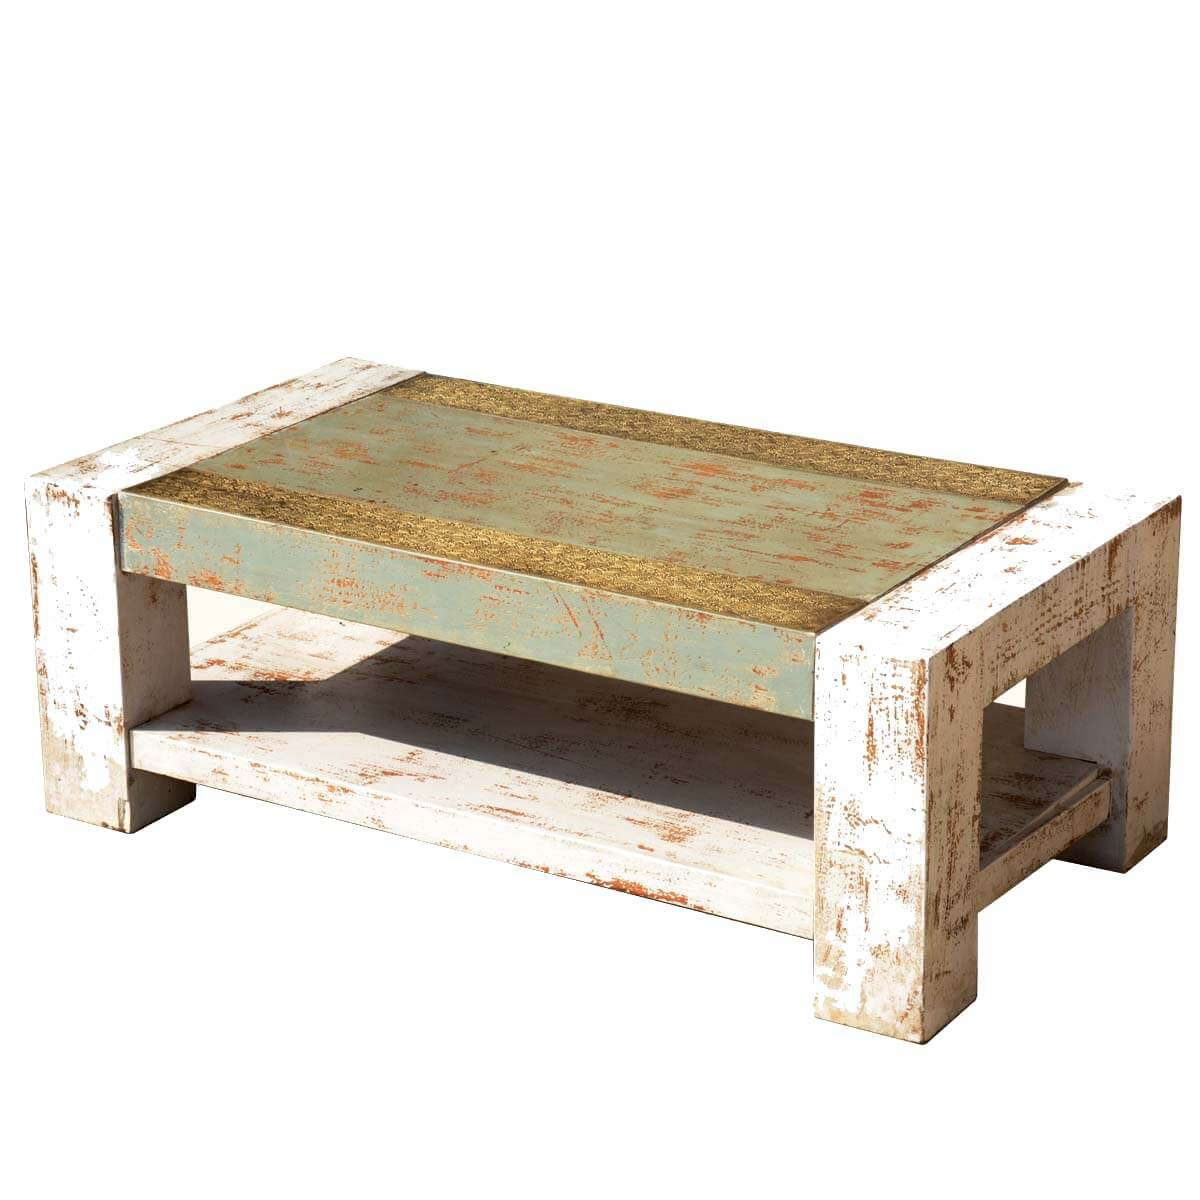 Distressed 2 Tier Acacia Wood Brass 43 5 Long Coffee Table